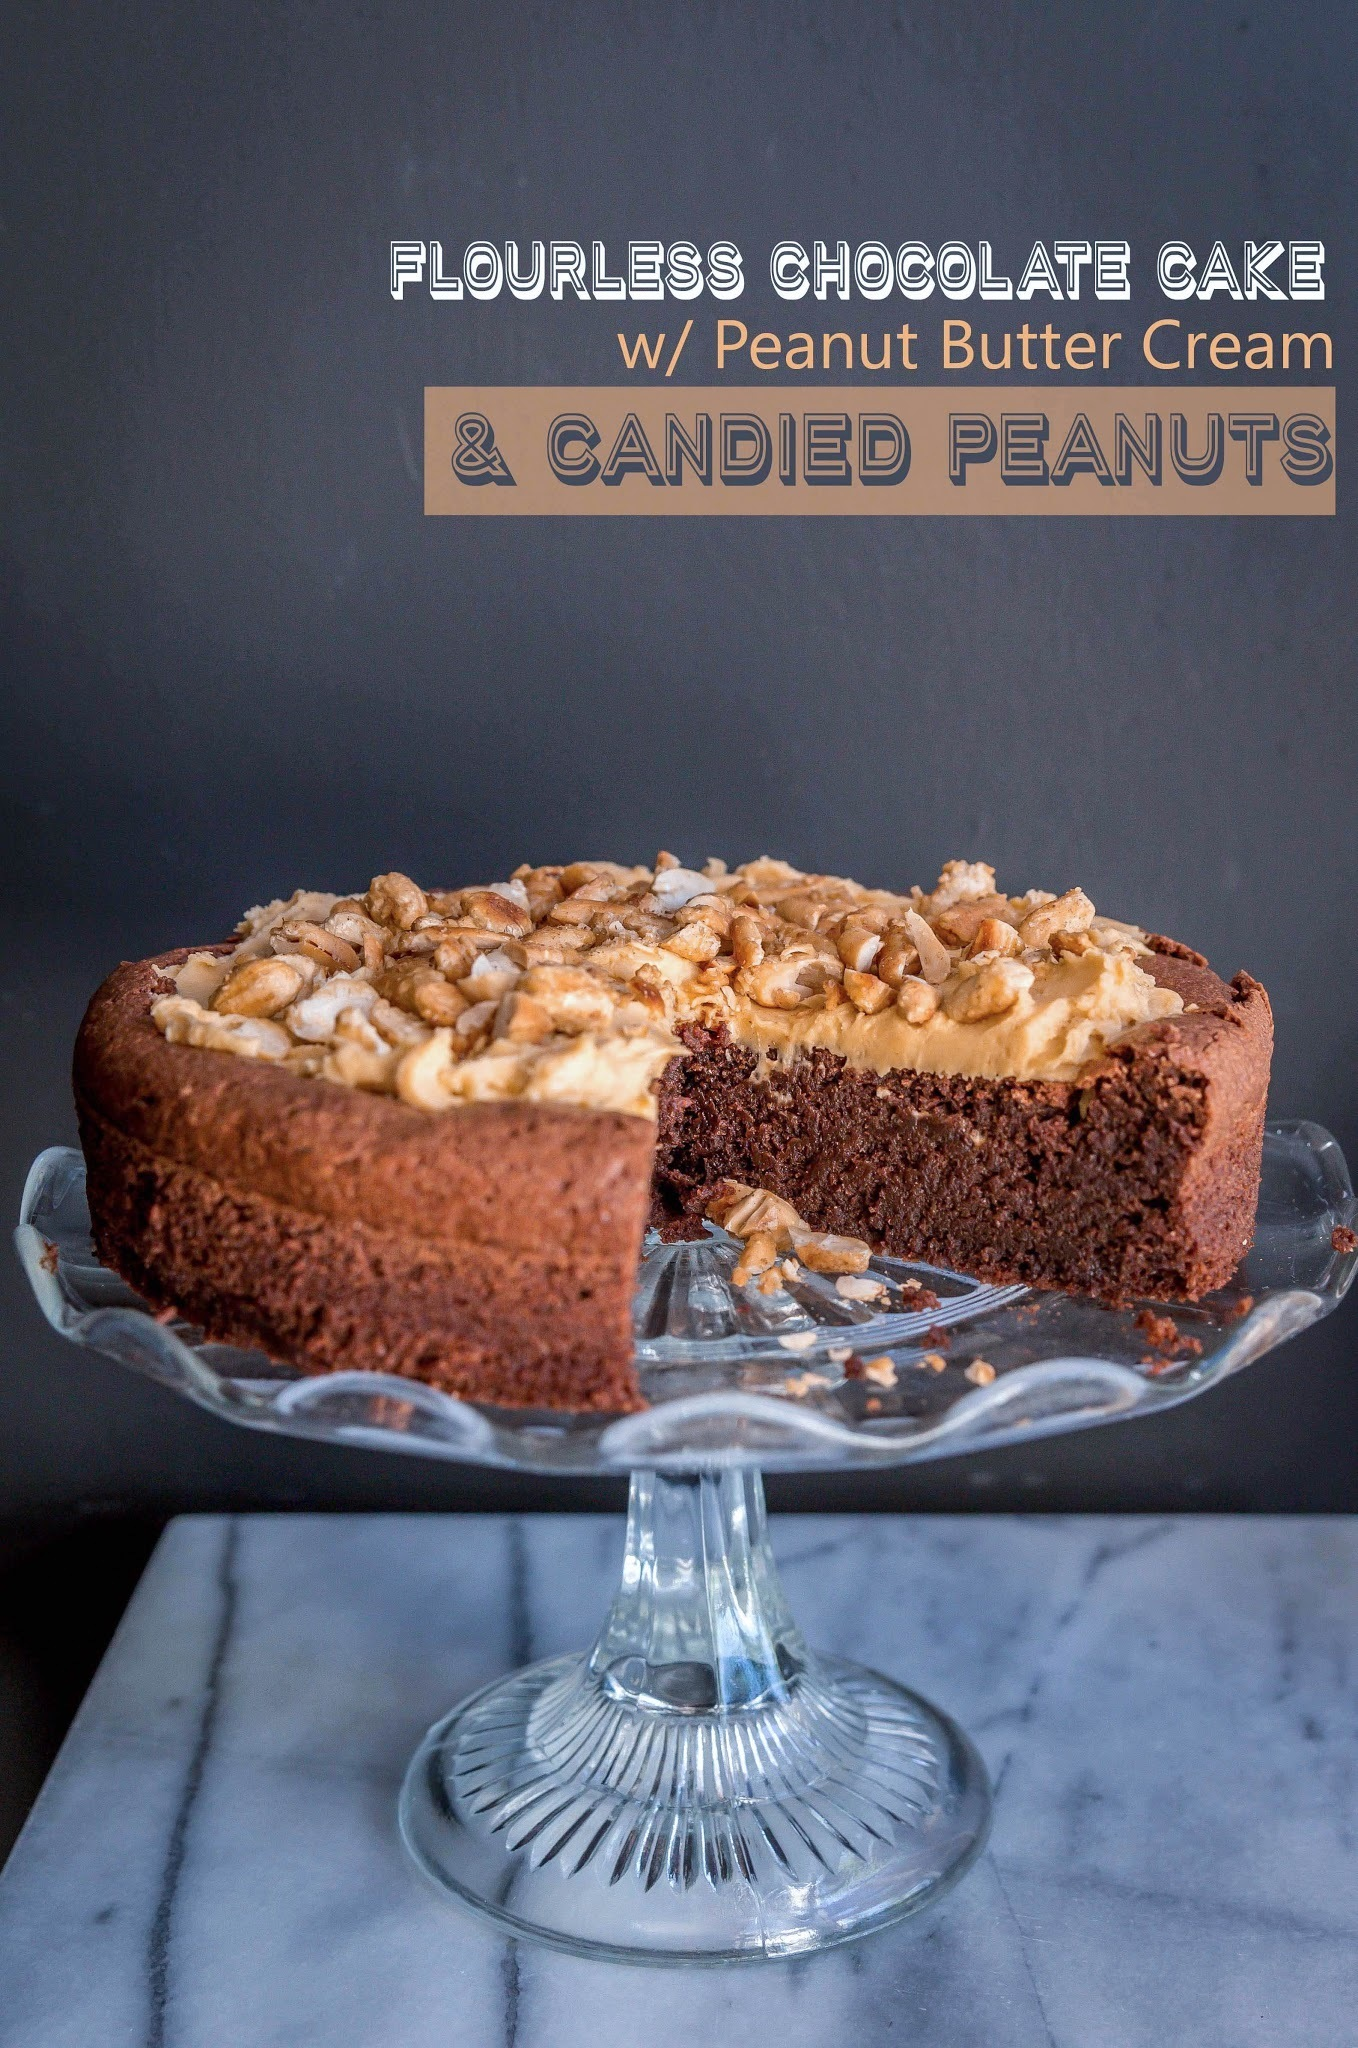 Flourless Chocolate Cake with Peanut Butter Cream and Candied Peanuts - Gluten Free